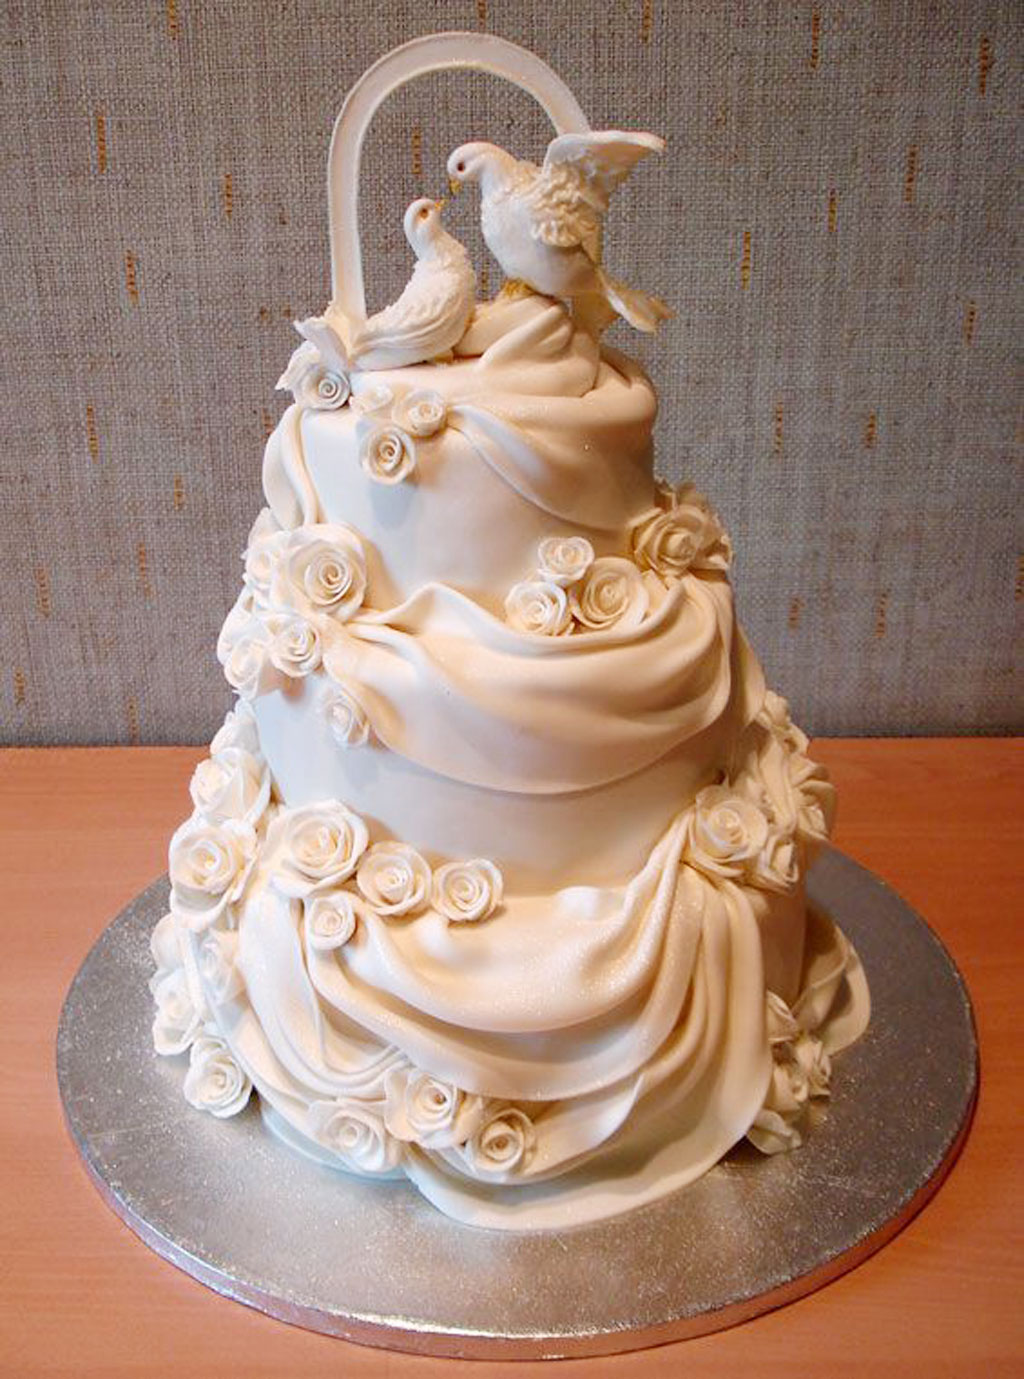 most beautiful wedding cake images beautiful wedding cakes toppers wedding cake cake ideas 17547